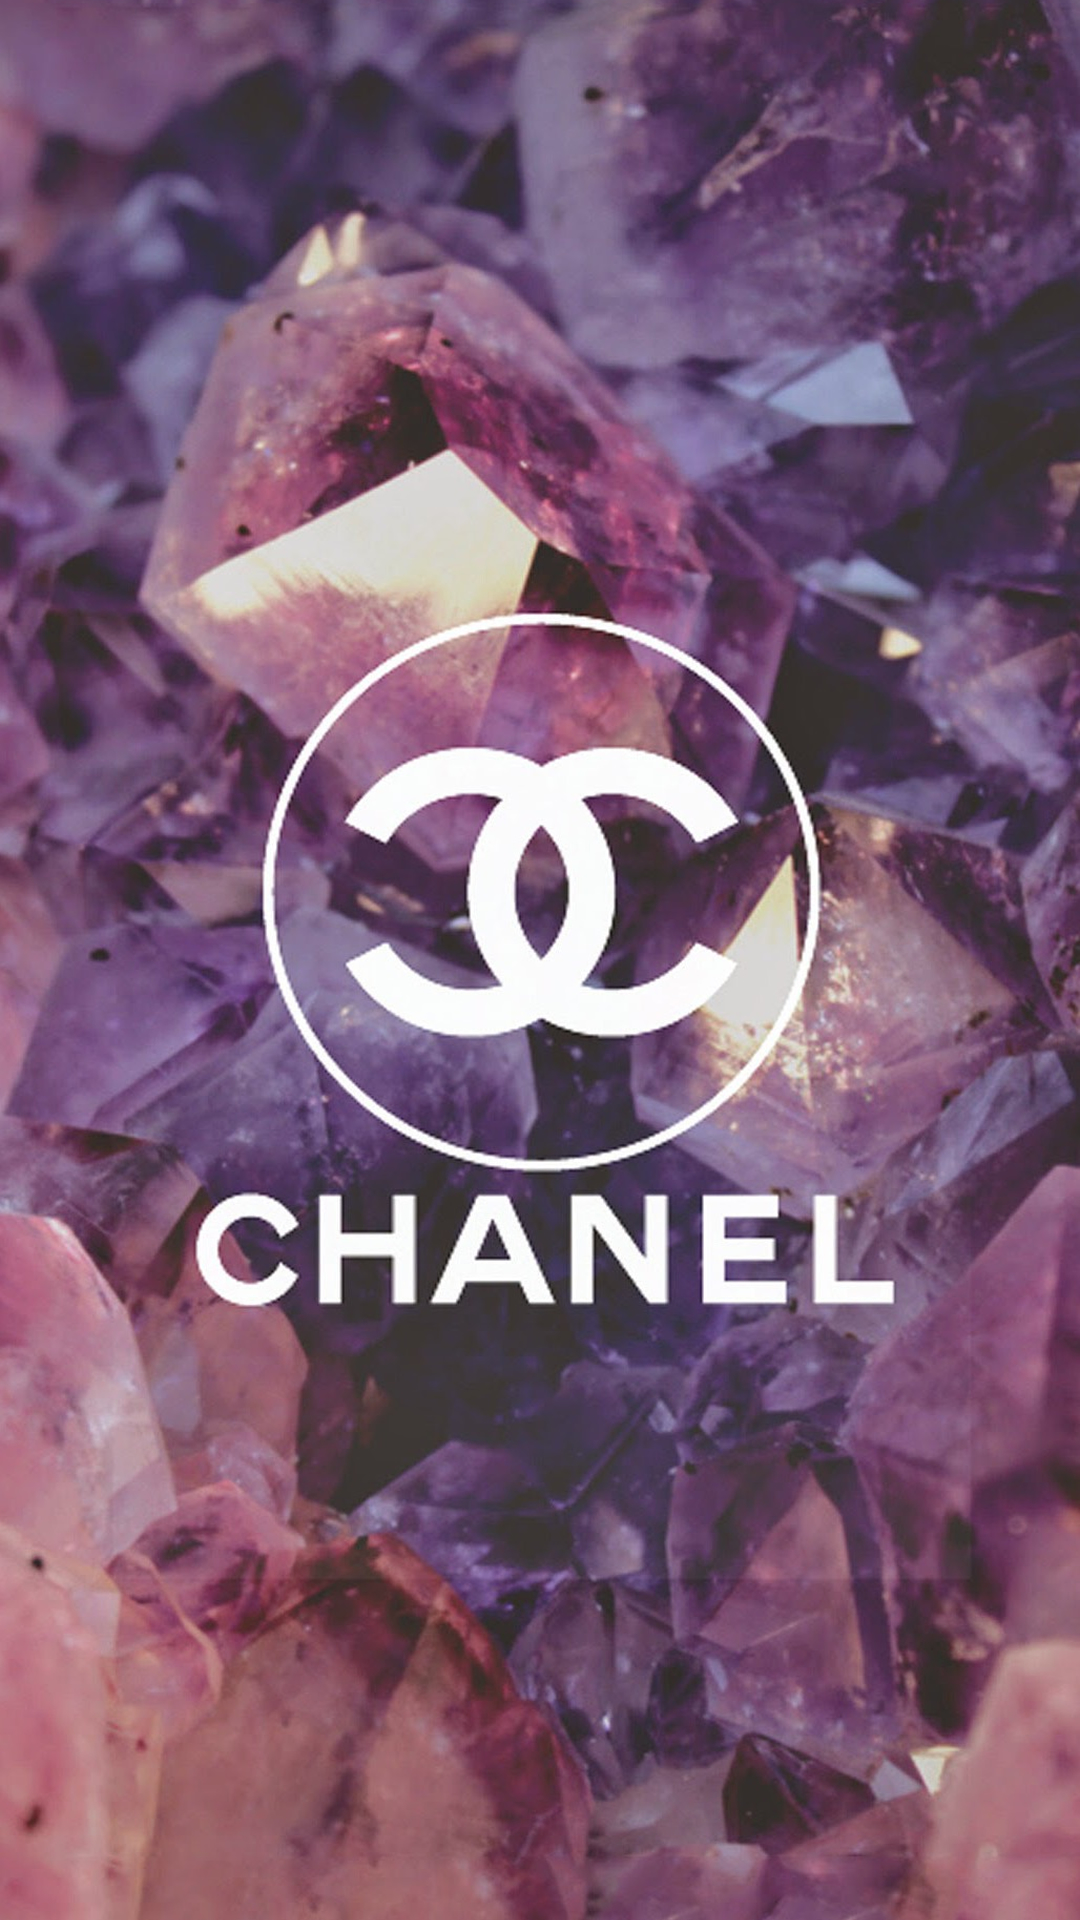 Coco Chanel Logo Diamonds iPhone 6 Wallpaper Download iPhone 1080x1920